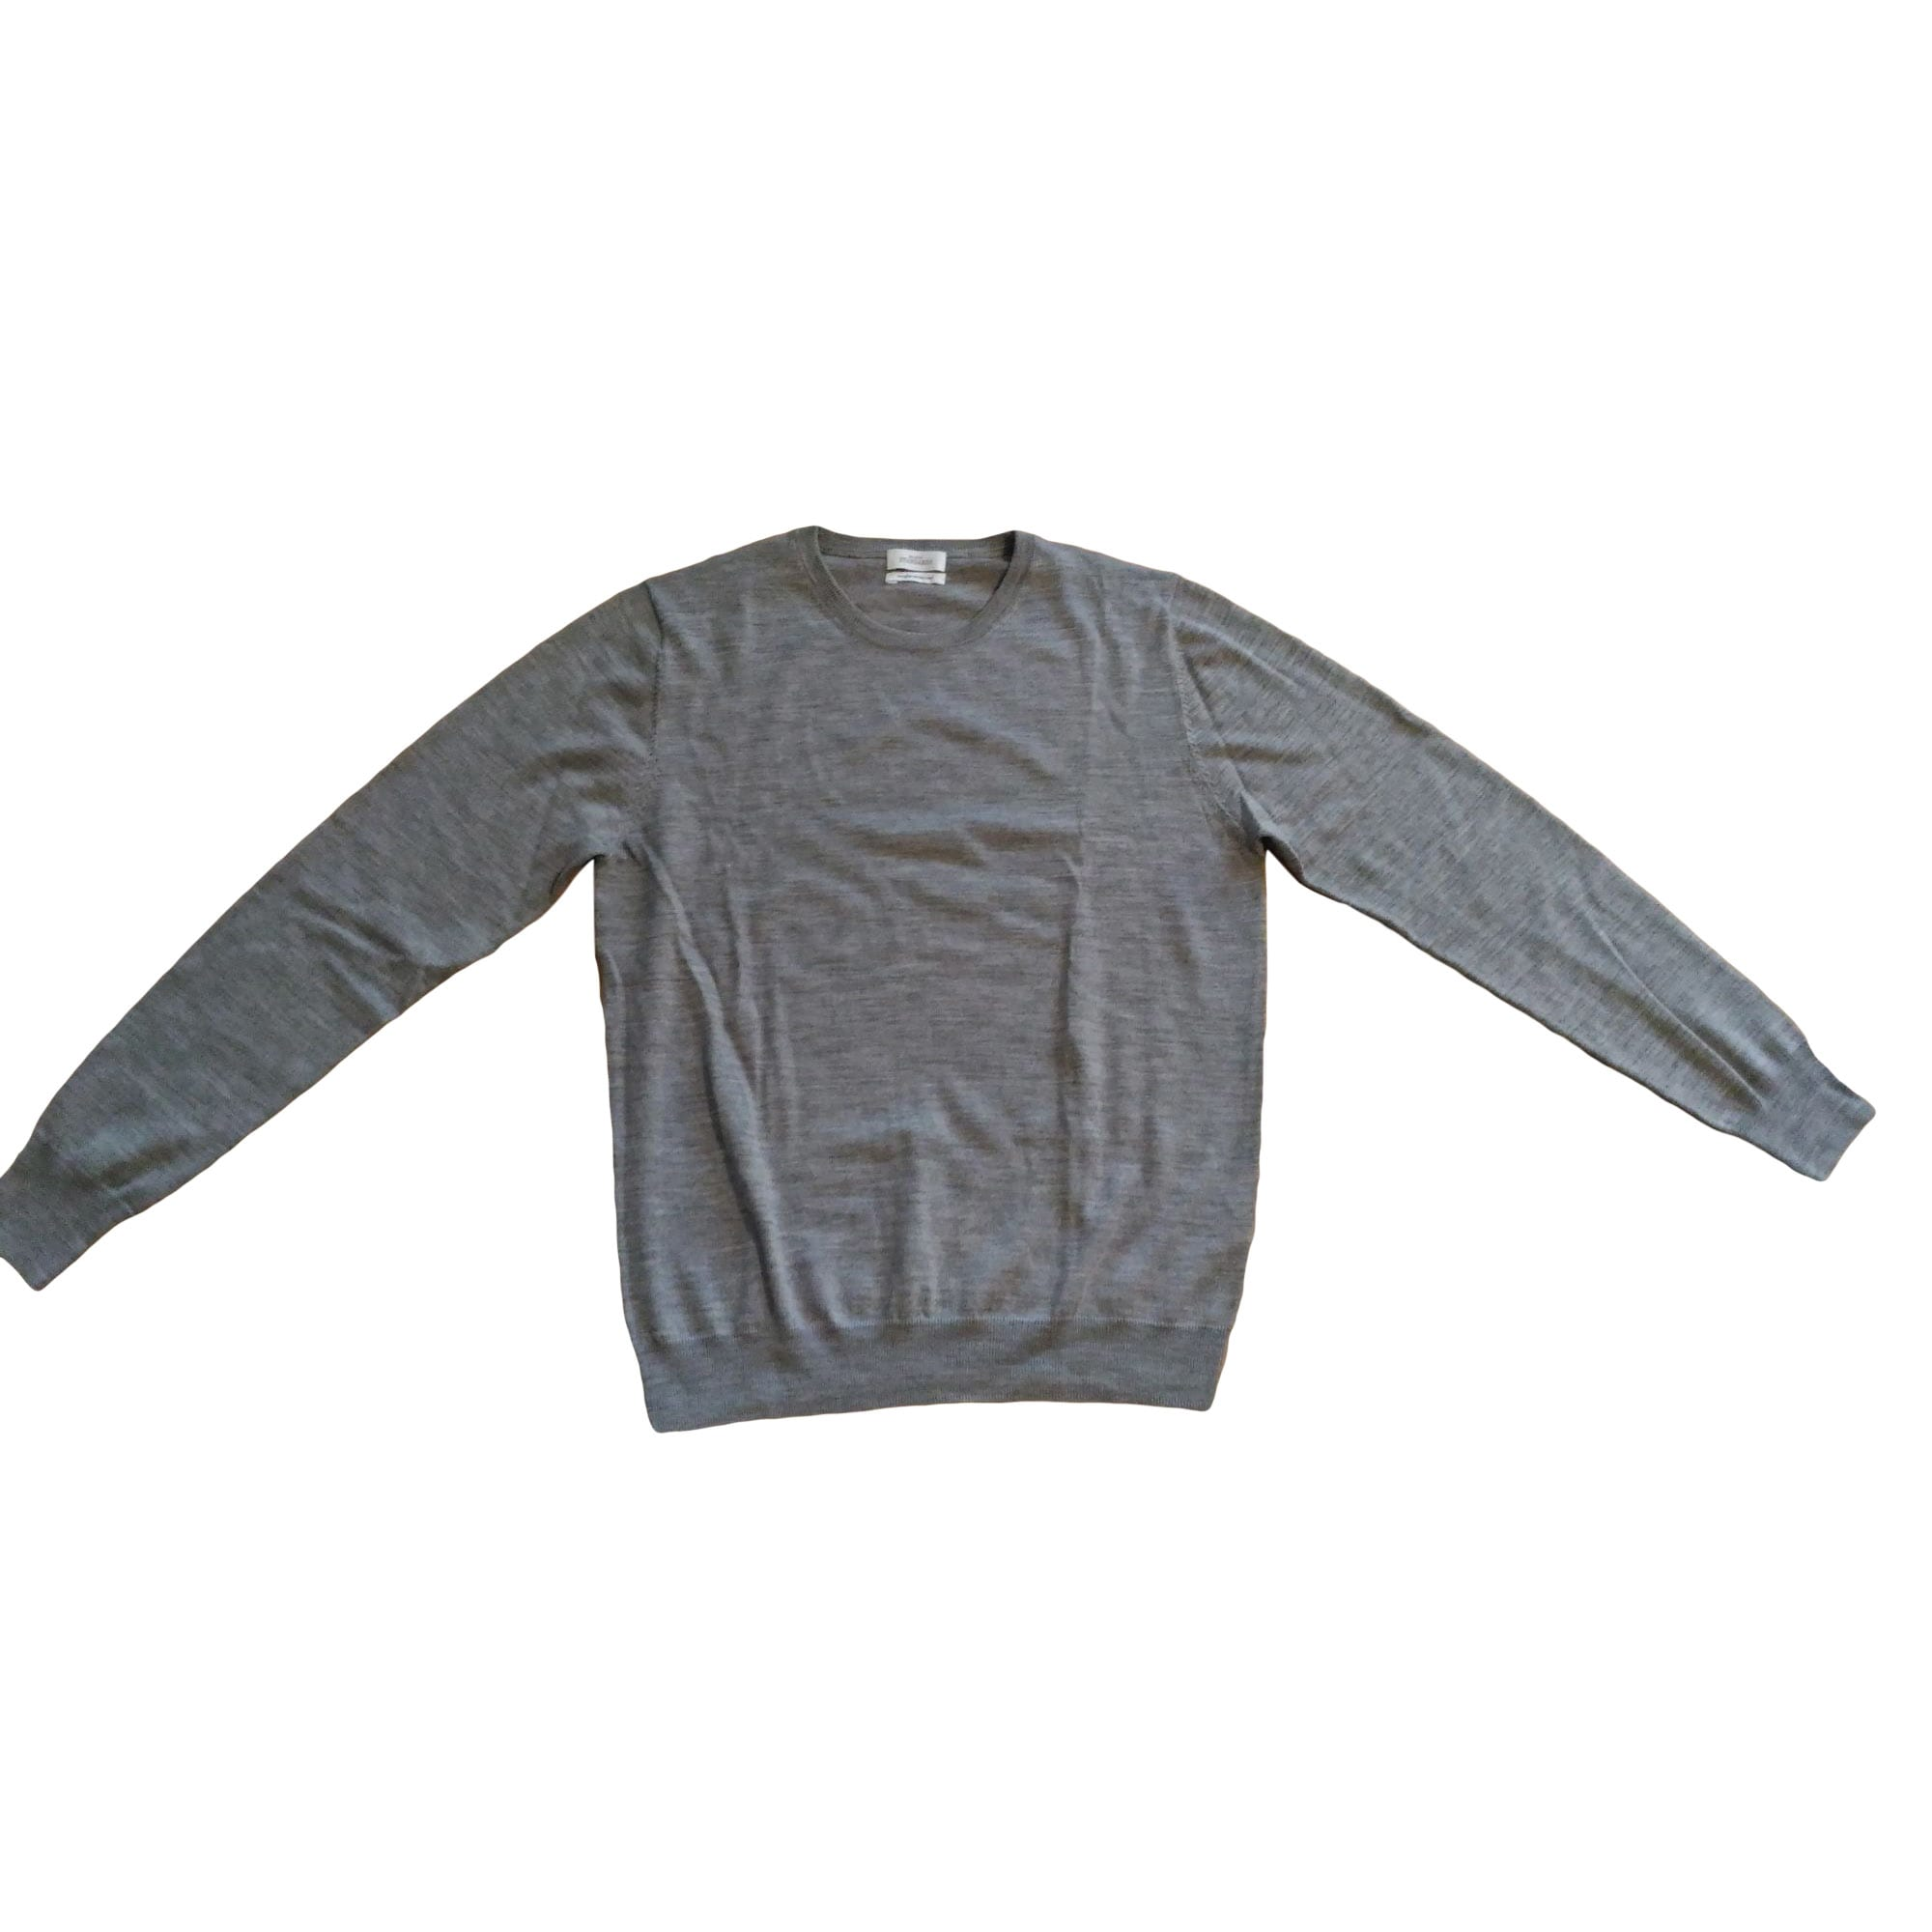 Sweater MAISON STANDARDS Gray, charcoal